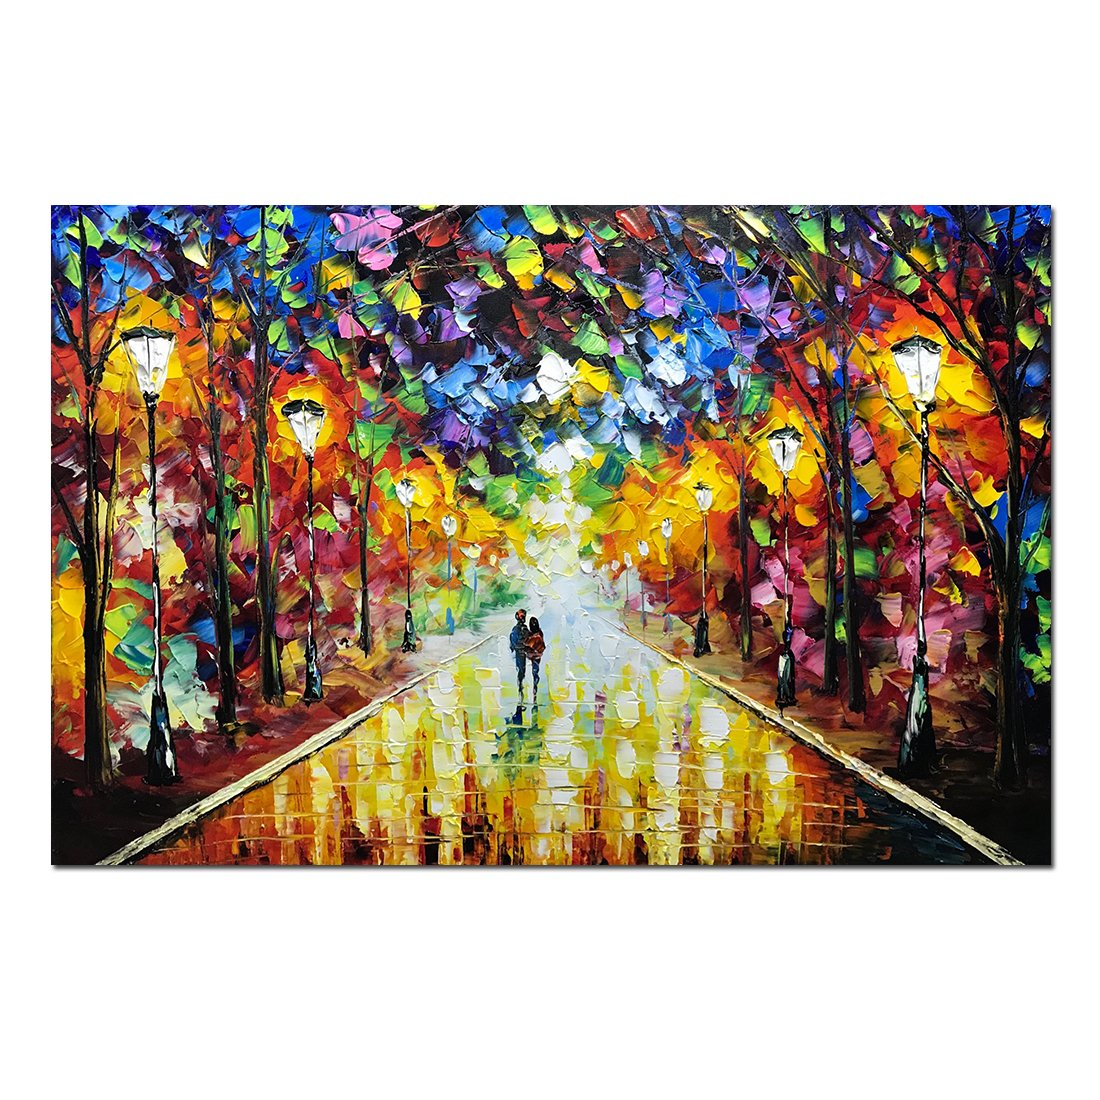 V-inspire Art, 24x36 Inch Modern Abstract Landscape Artwork Lovers Under the Night Rainy Street Canvas Painting Wall Art for Home Decorations Wall Décor with Stretched Frame Ready to Hang